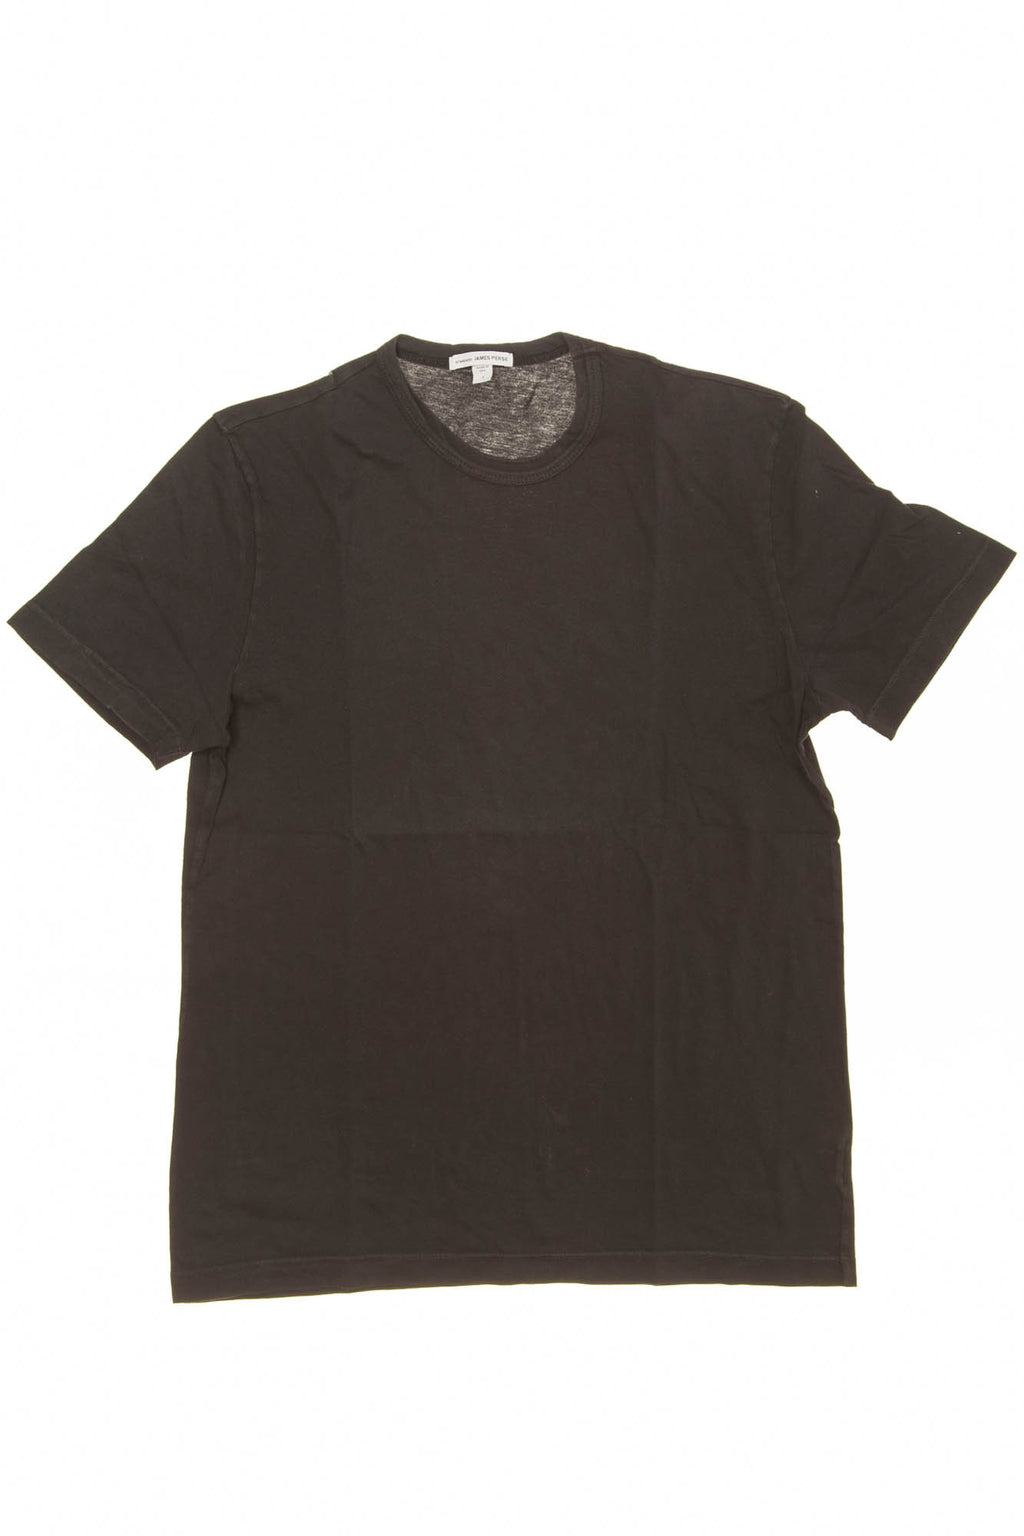 James Perse - Dark Brown Short Sleeve TShirt - 1